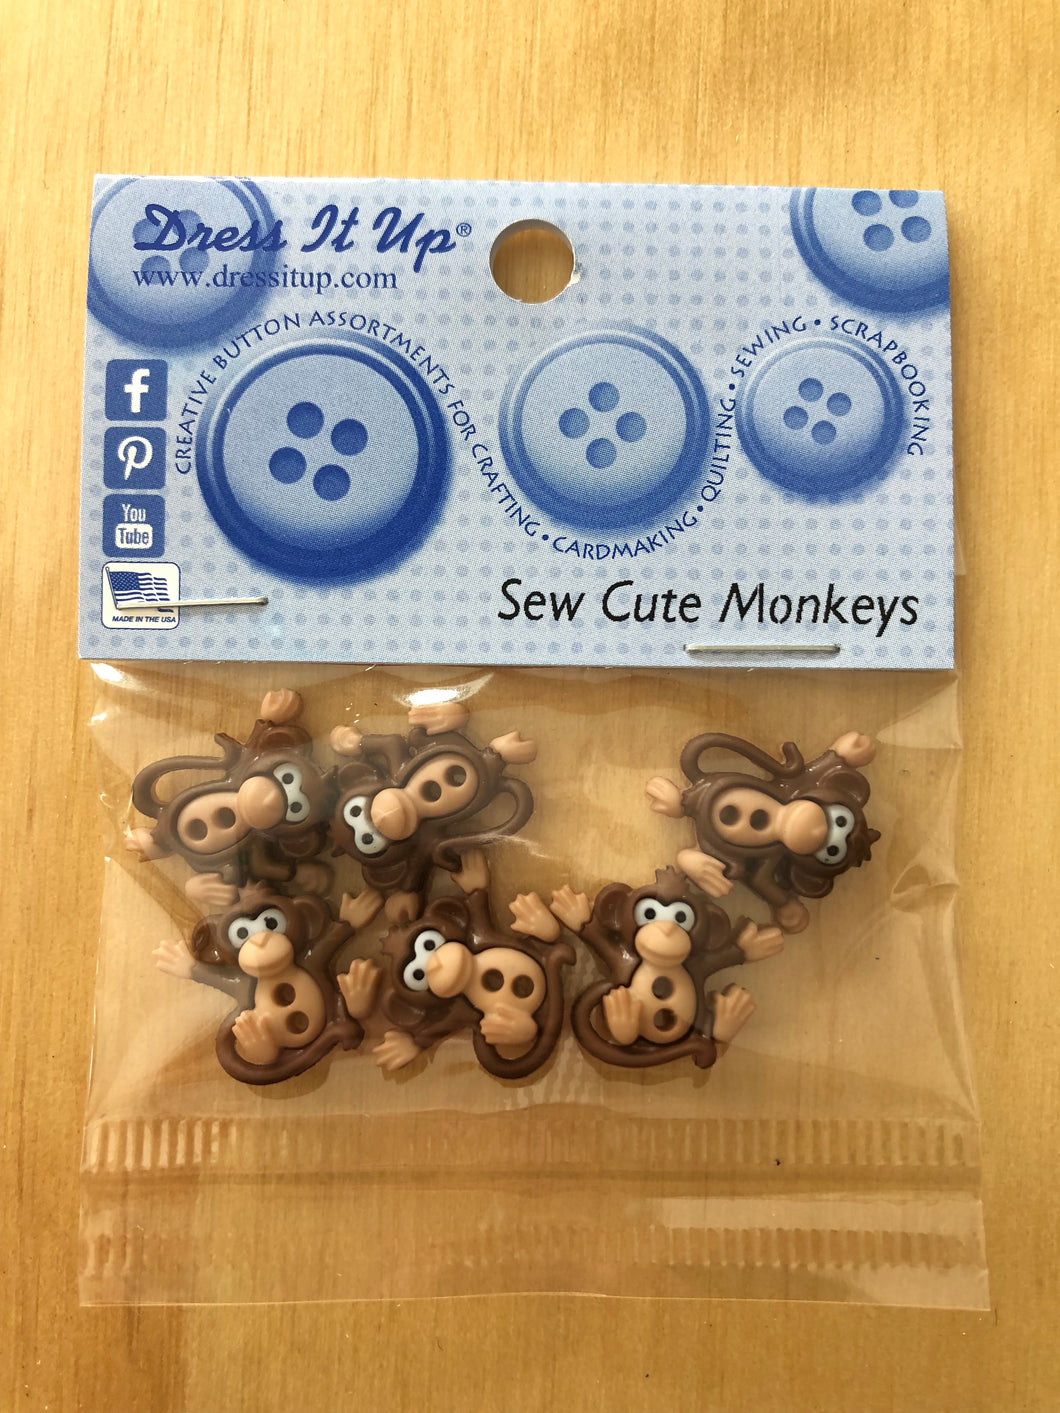 Sew Cute Monkeys